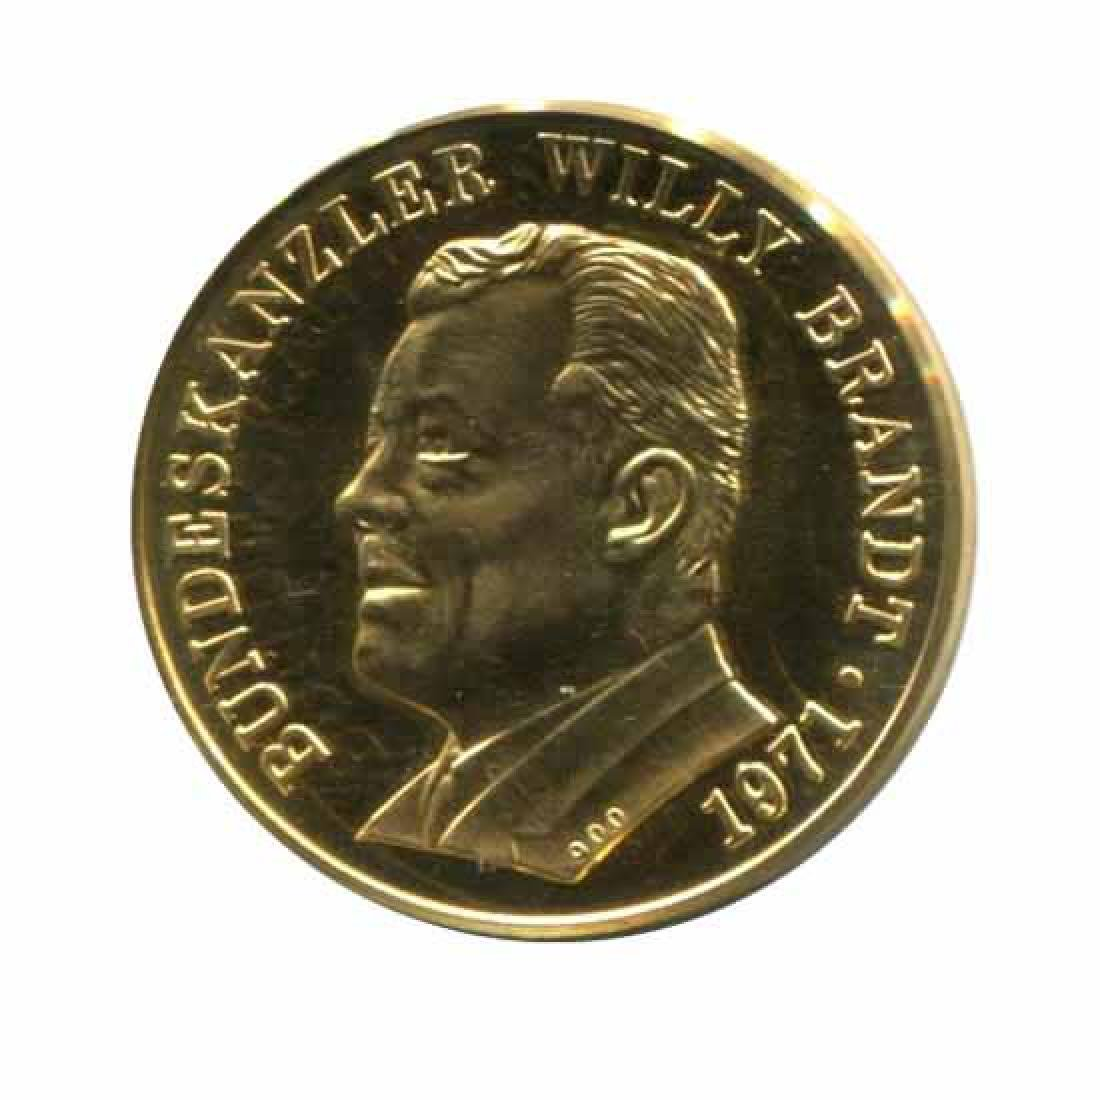 Germany Willy Brandt Gold Medal Nobel Peace Prize 1971